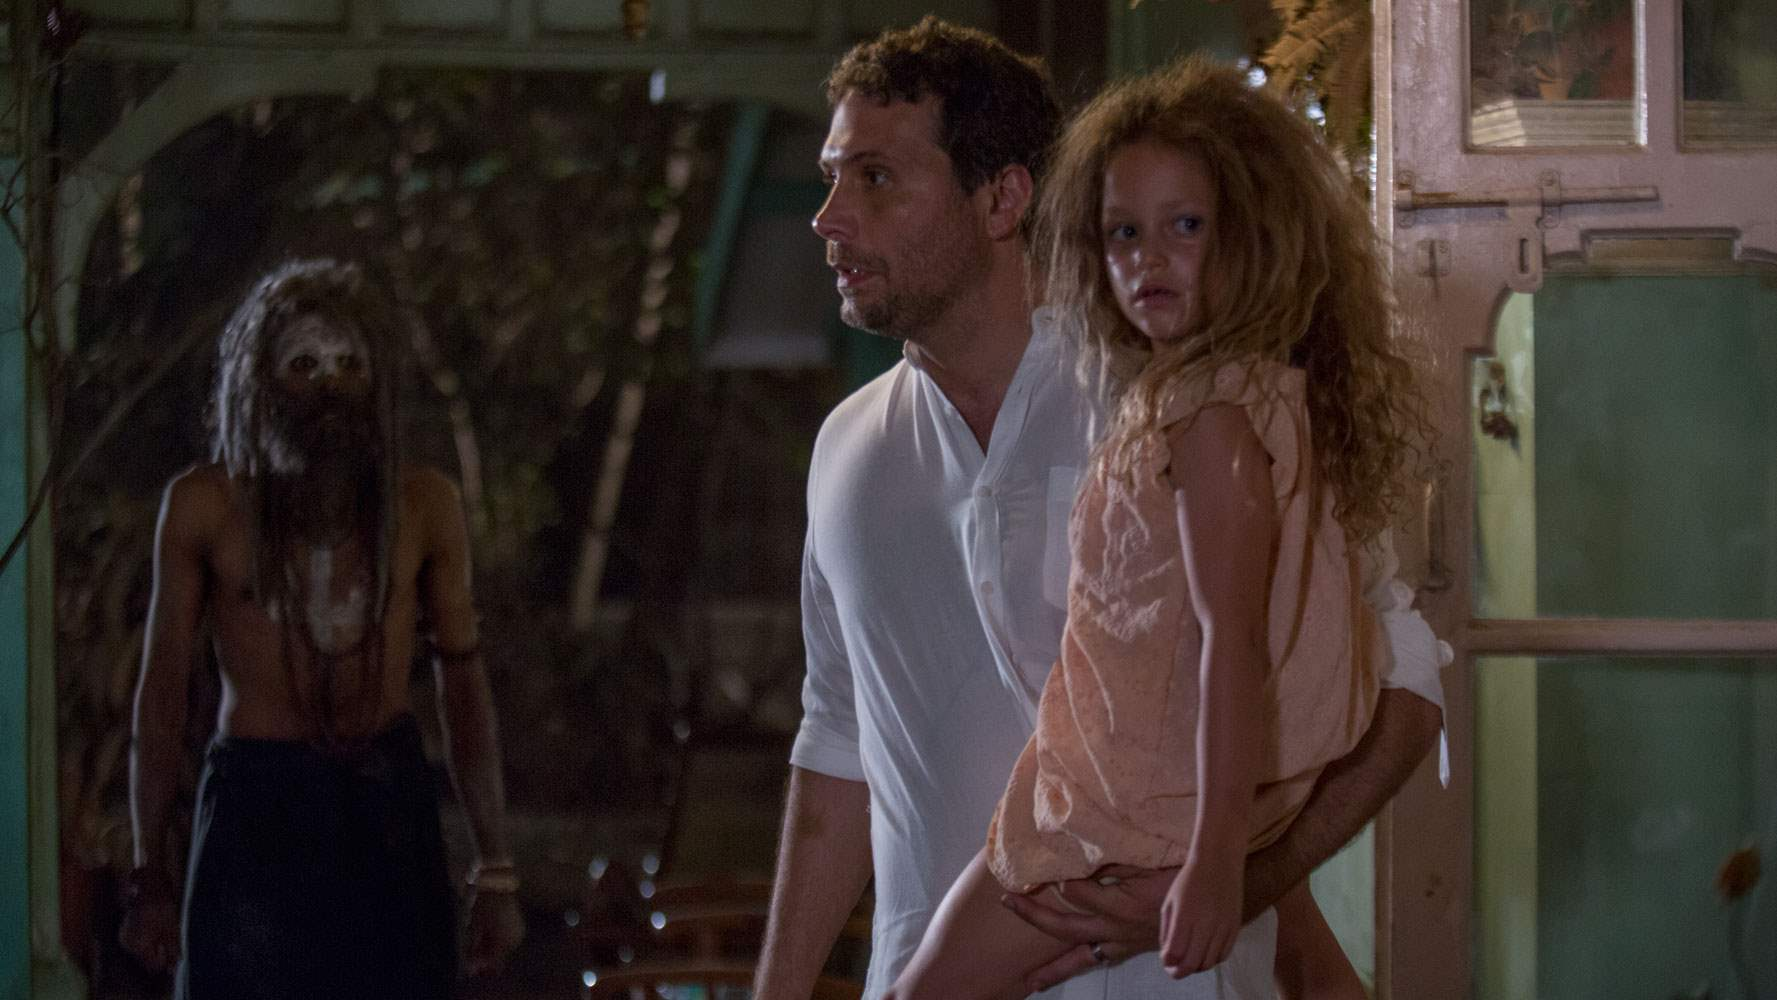 Jeremy Sisto and Sofia Rosinsky in The Other Side Of The Door